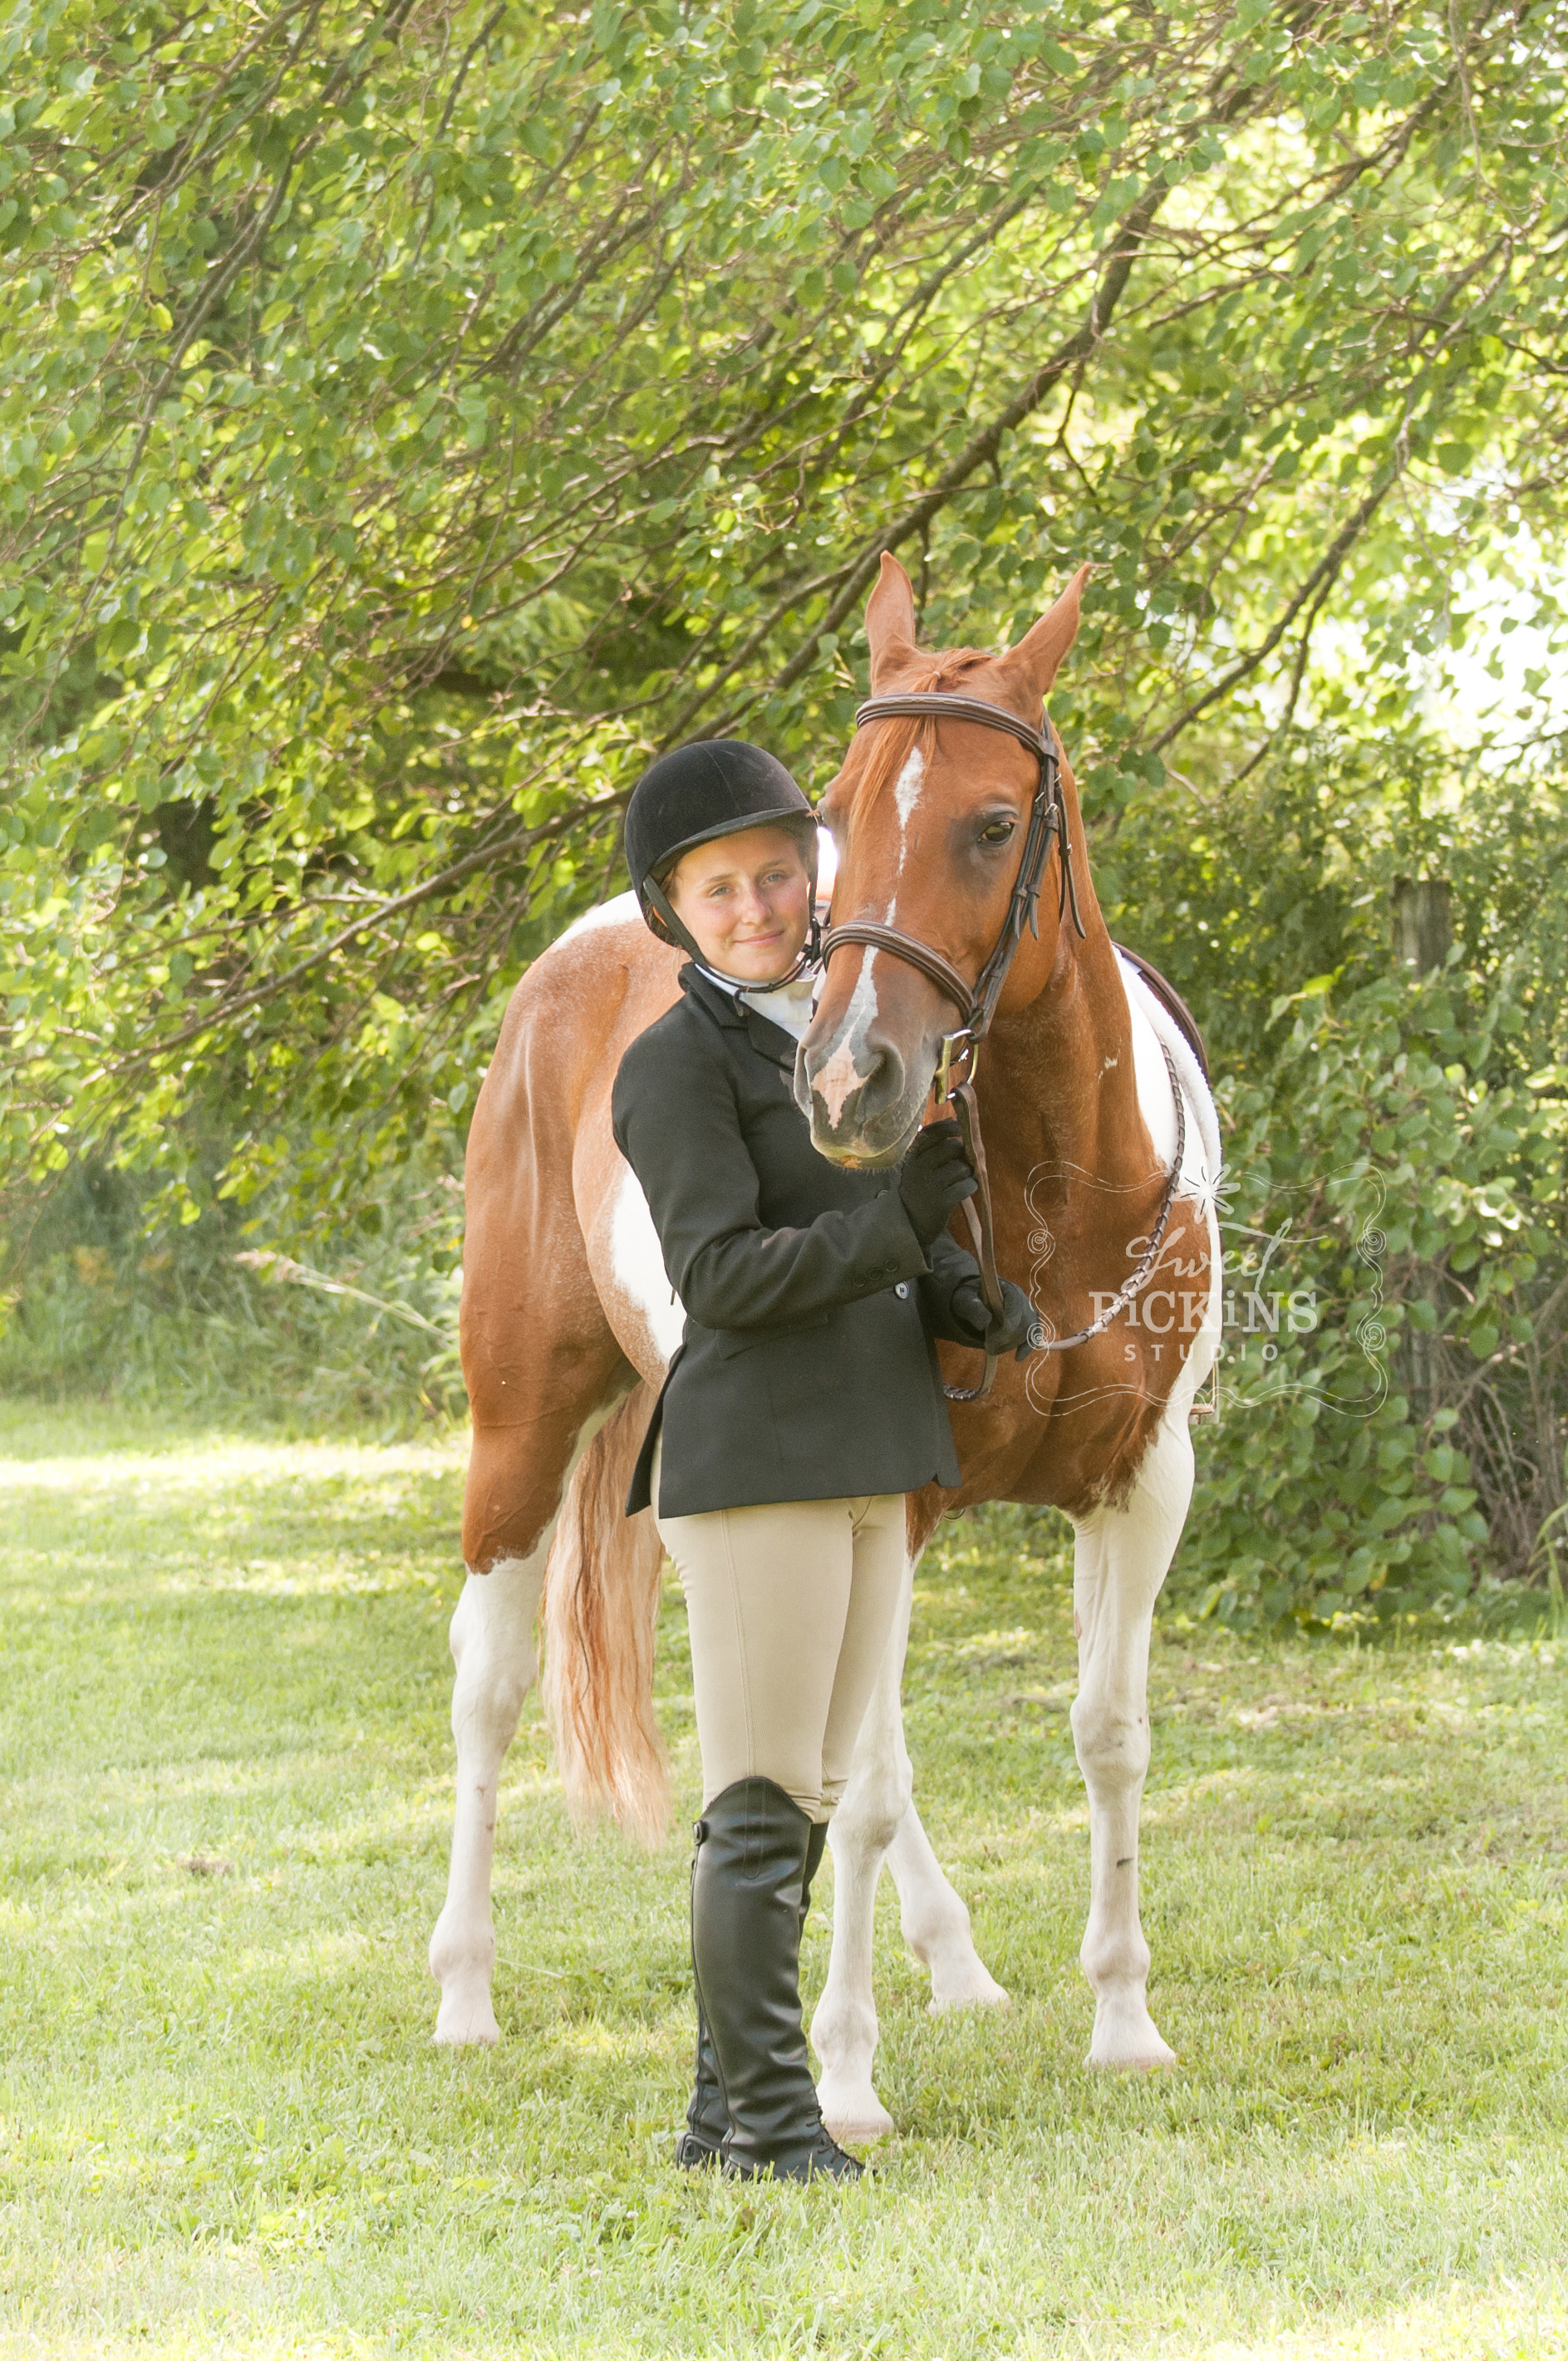 Equestrian Horse Portrait Photography Session   Sweet Pickins Studio